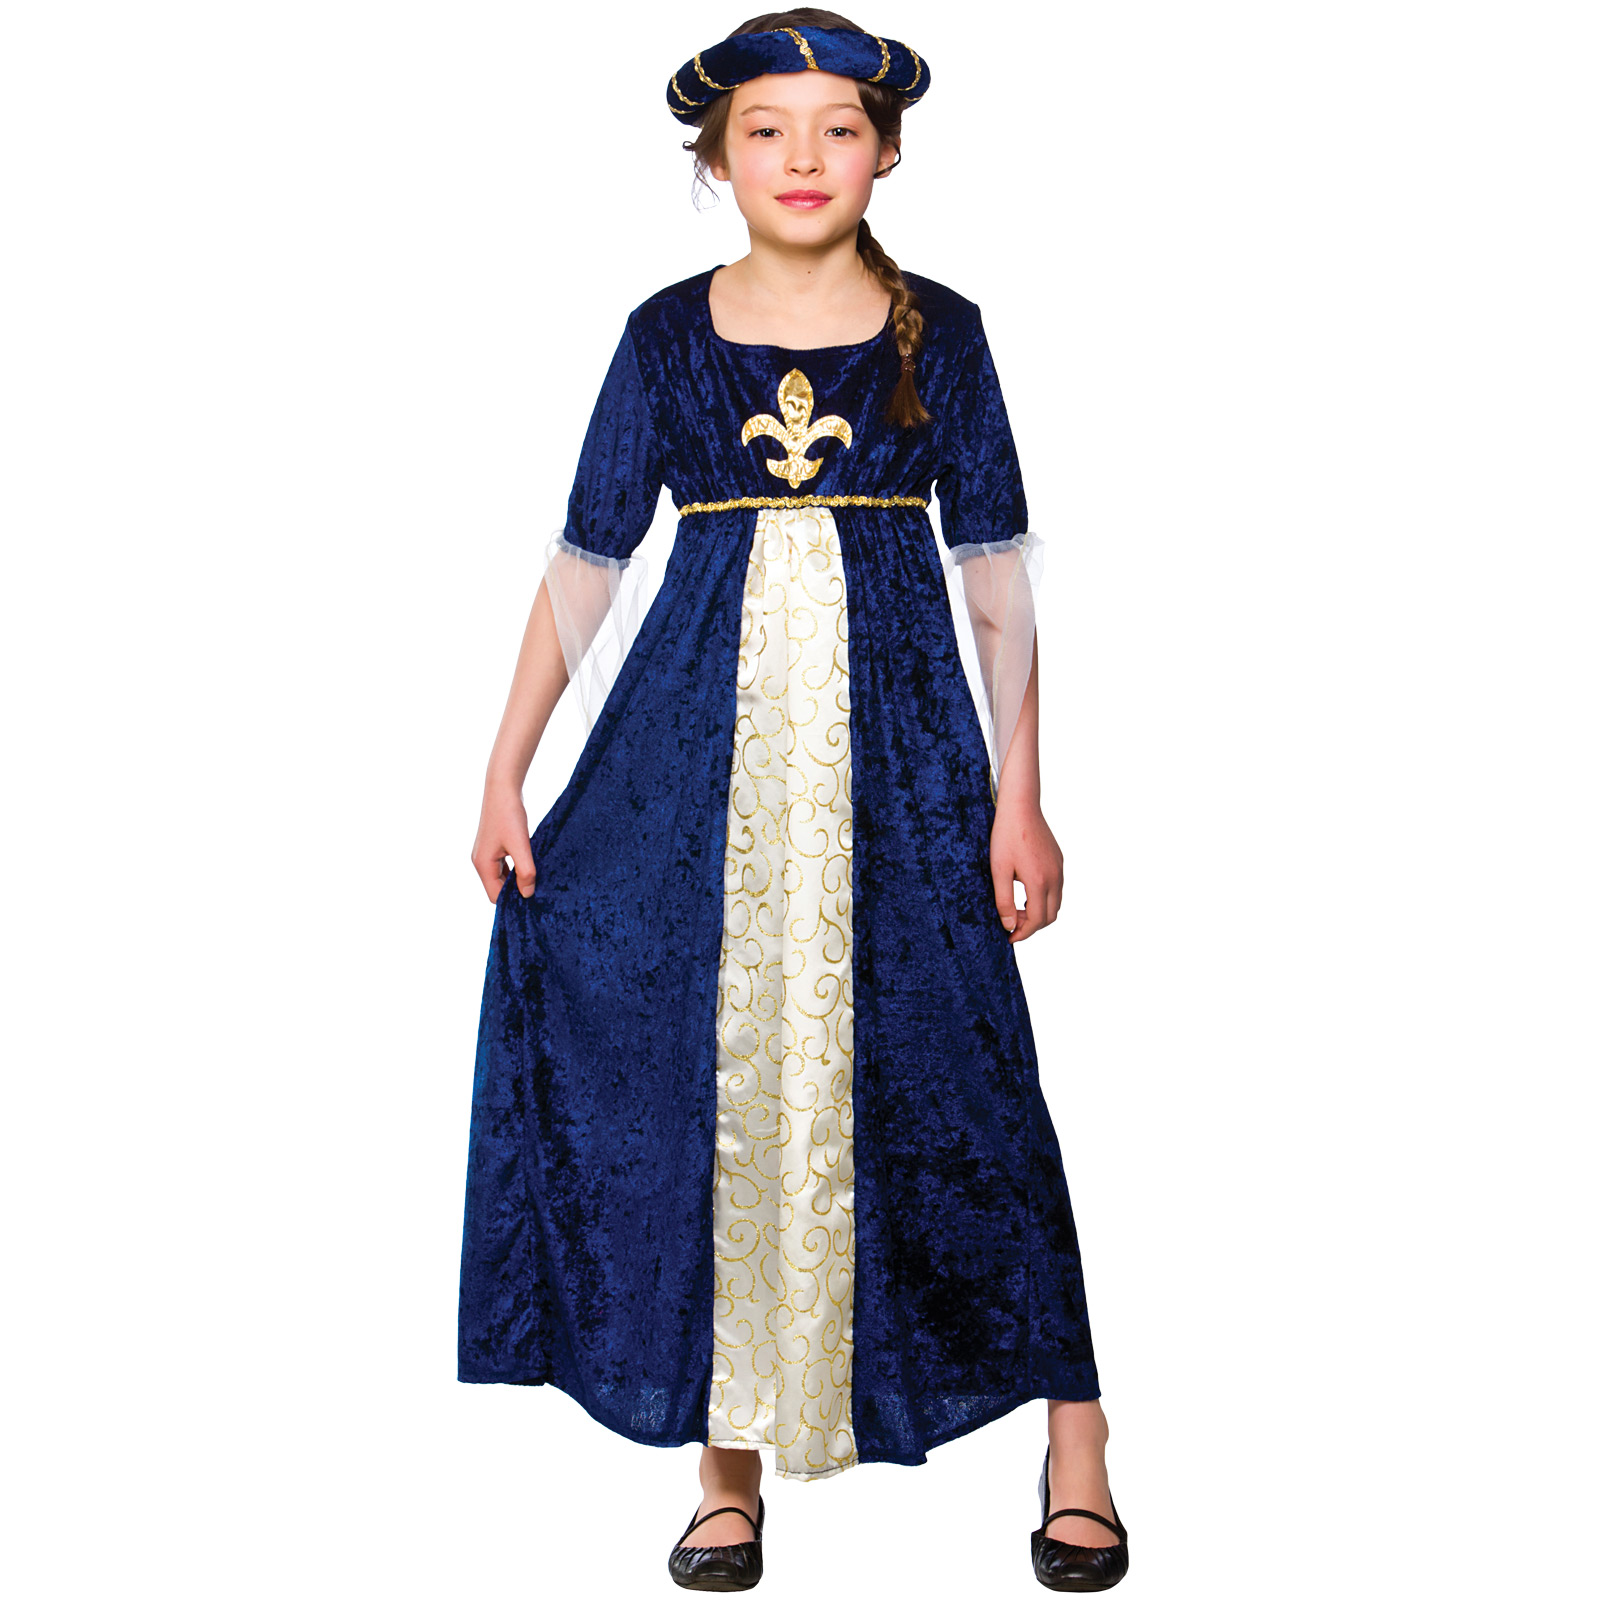 Brilliant Girls Jasmine Arabian Princess Fancy Dress Up Costume Outfit EBay  sc 1 st  playzoa.com & 24 cool Women Dress Up Costumes u2013 playzoa.com